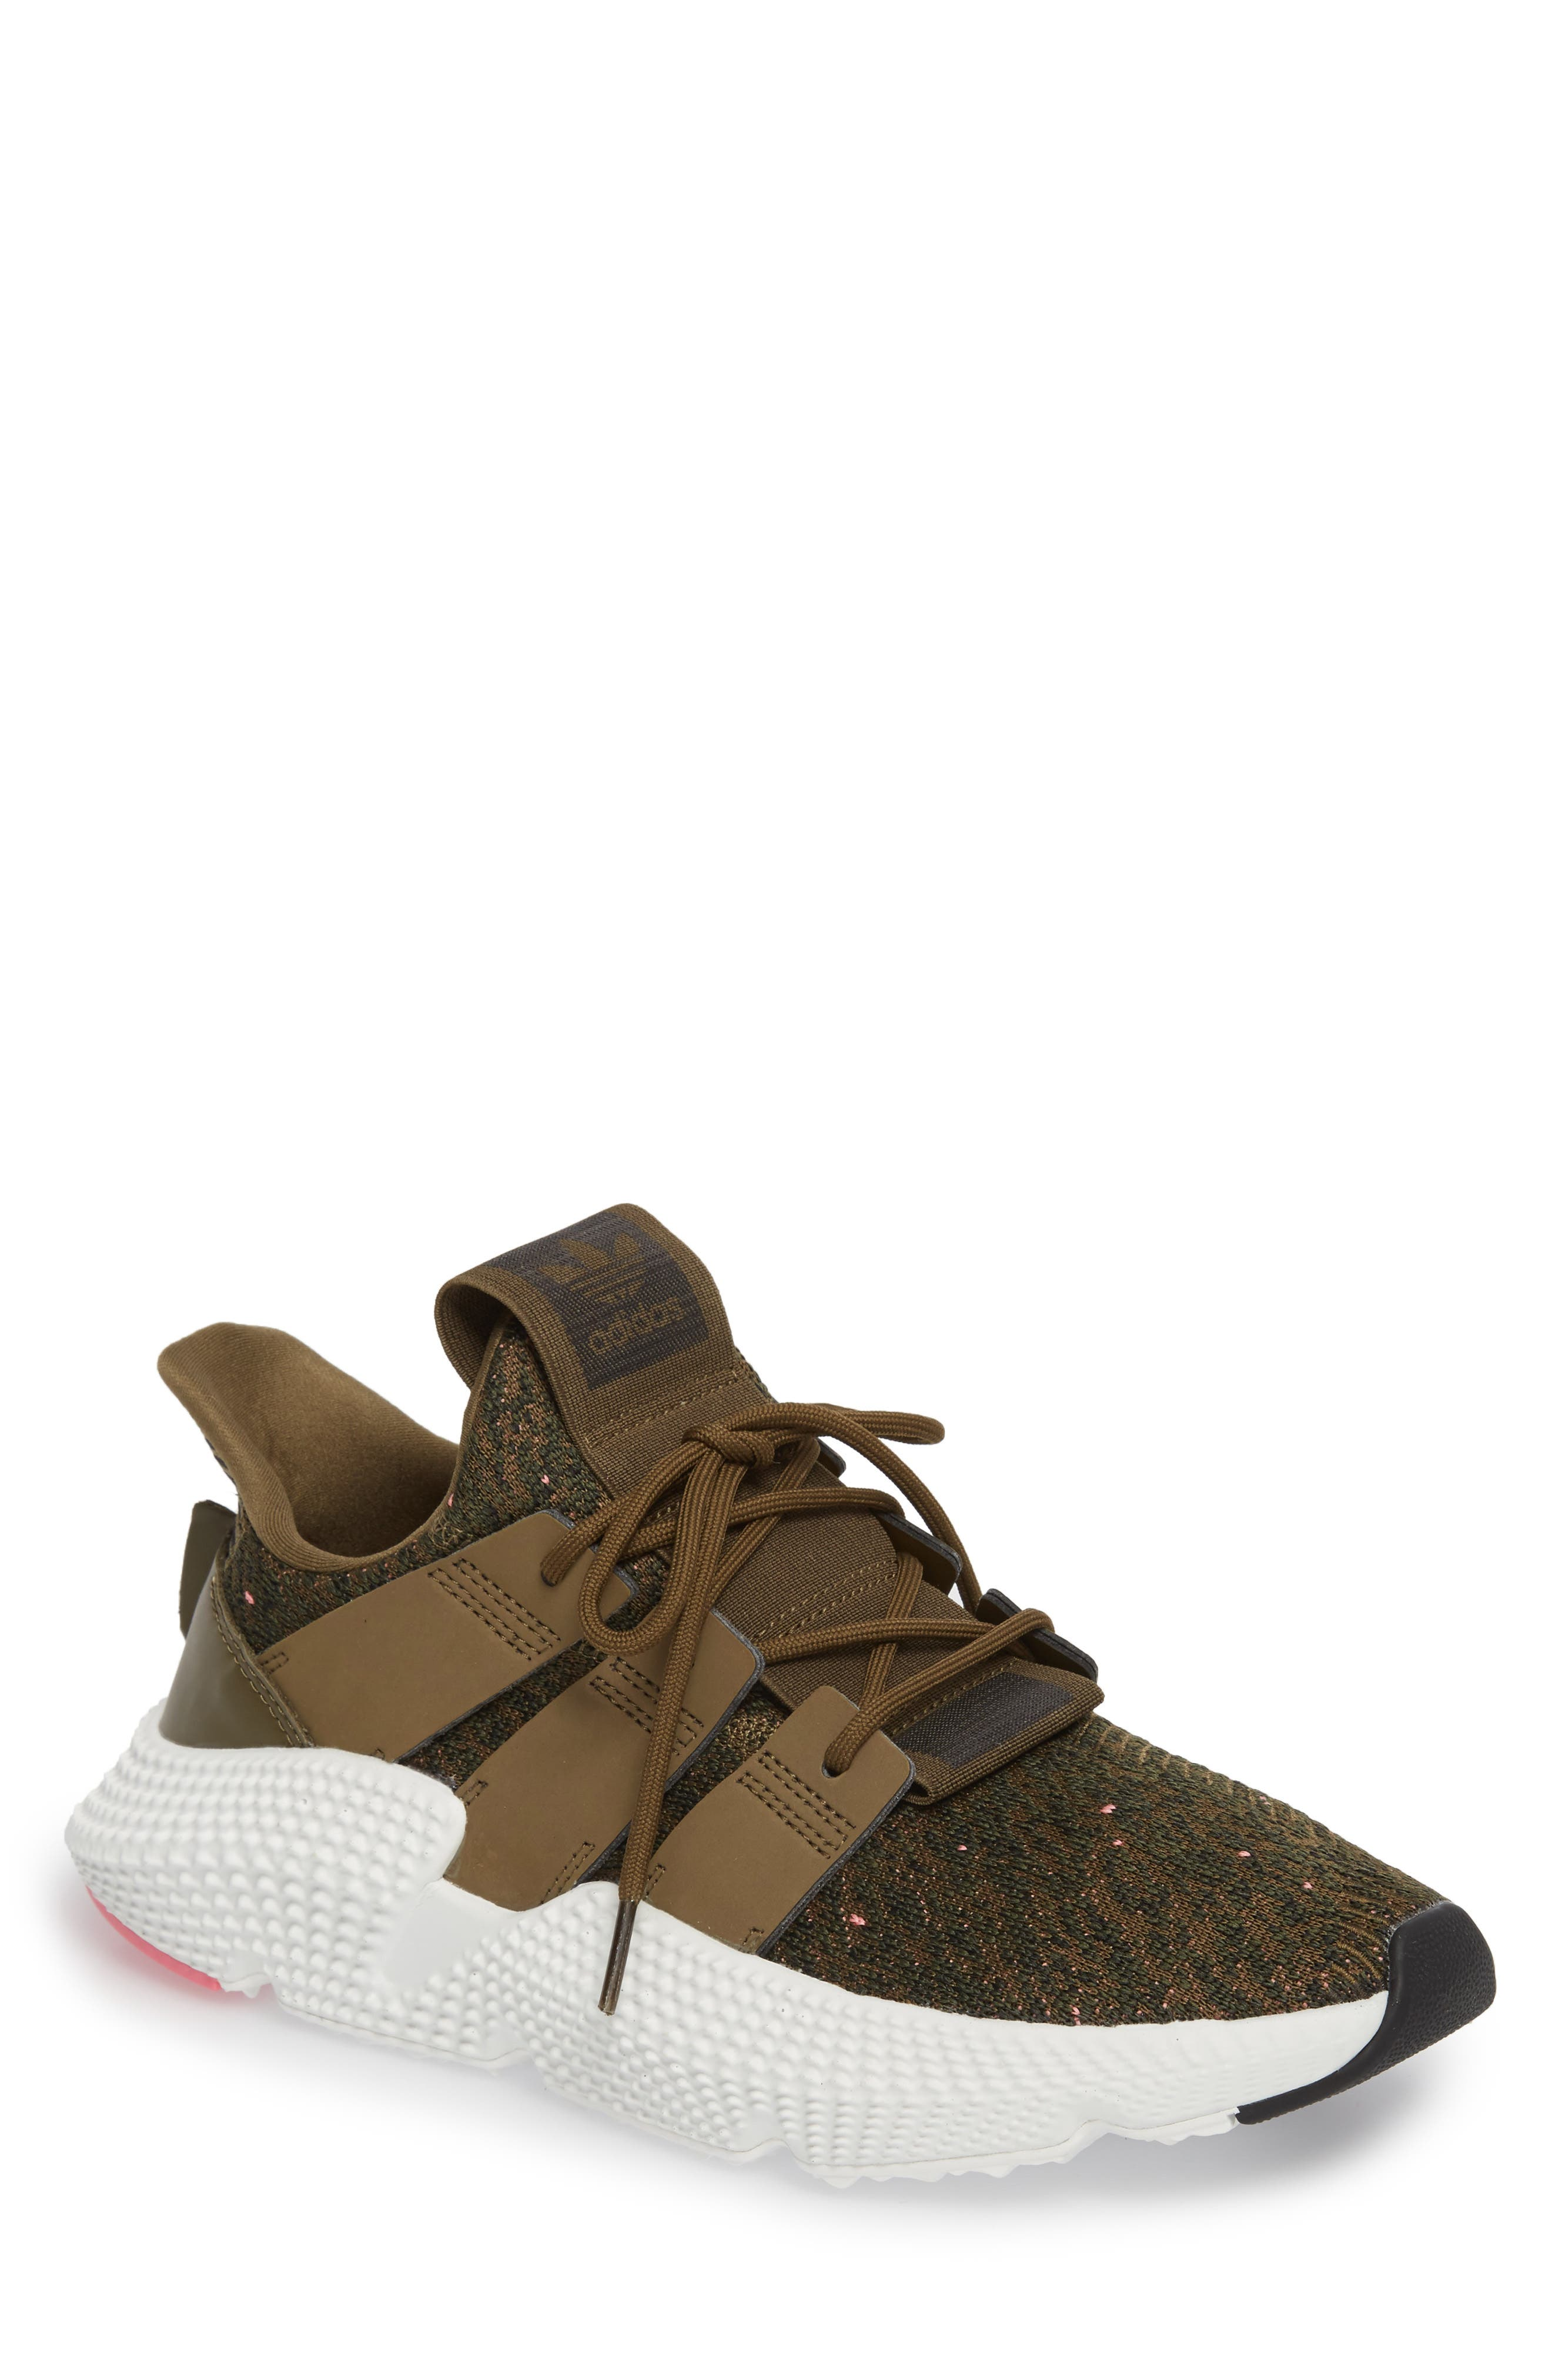 Prophere Sneaker,                             Main thumbnail 1, color,                             TRACE OLIVE/ CHALK PINK